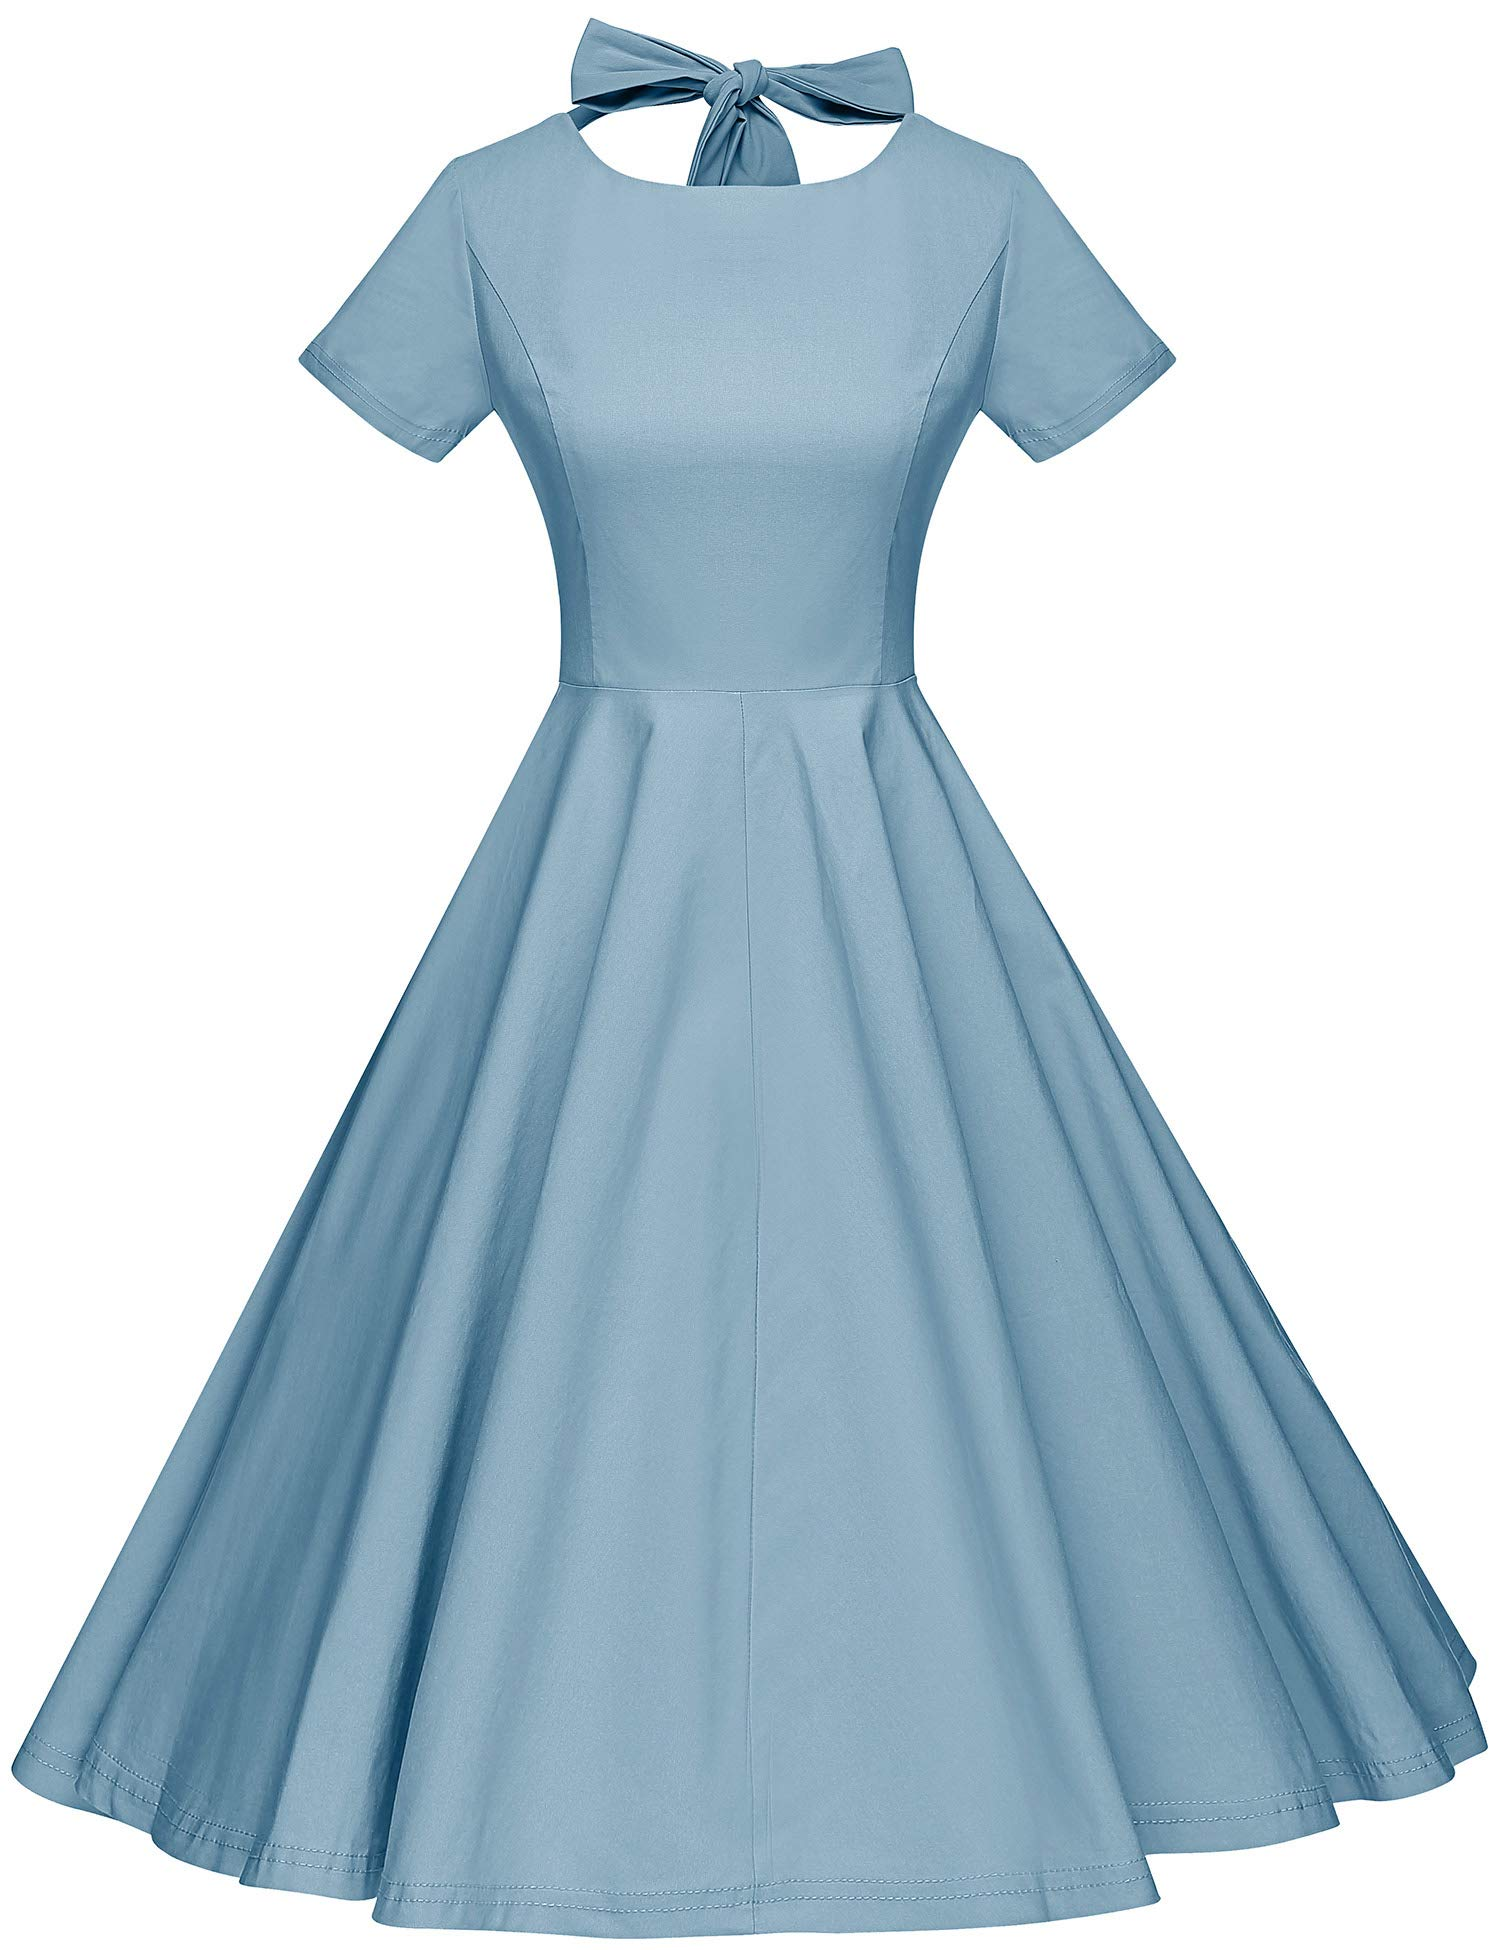 ca22569192 GownTown Womens 1950s Vintage Retro Party Swing Dress Rockabillty Stretchy  Dress Stone Blue